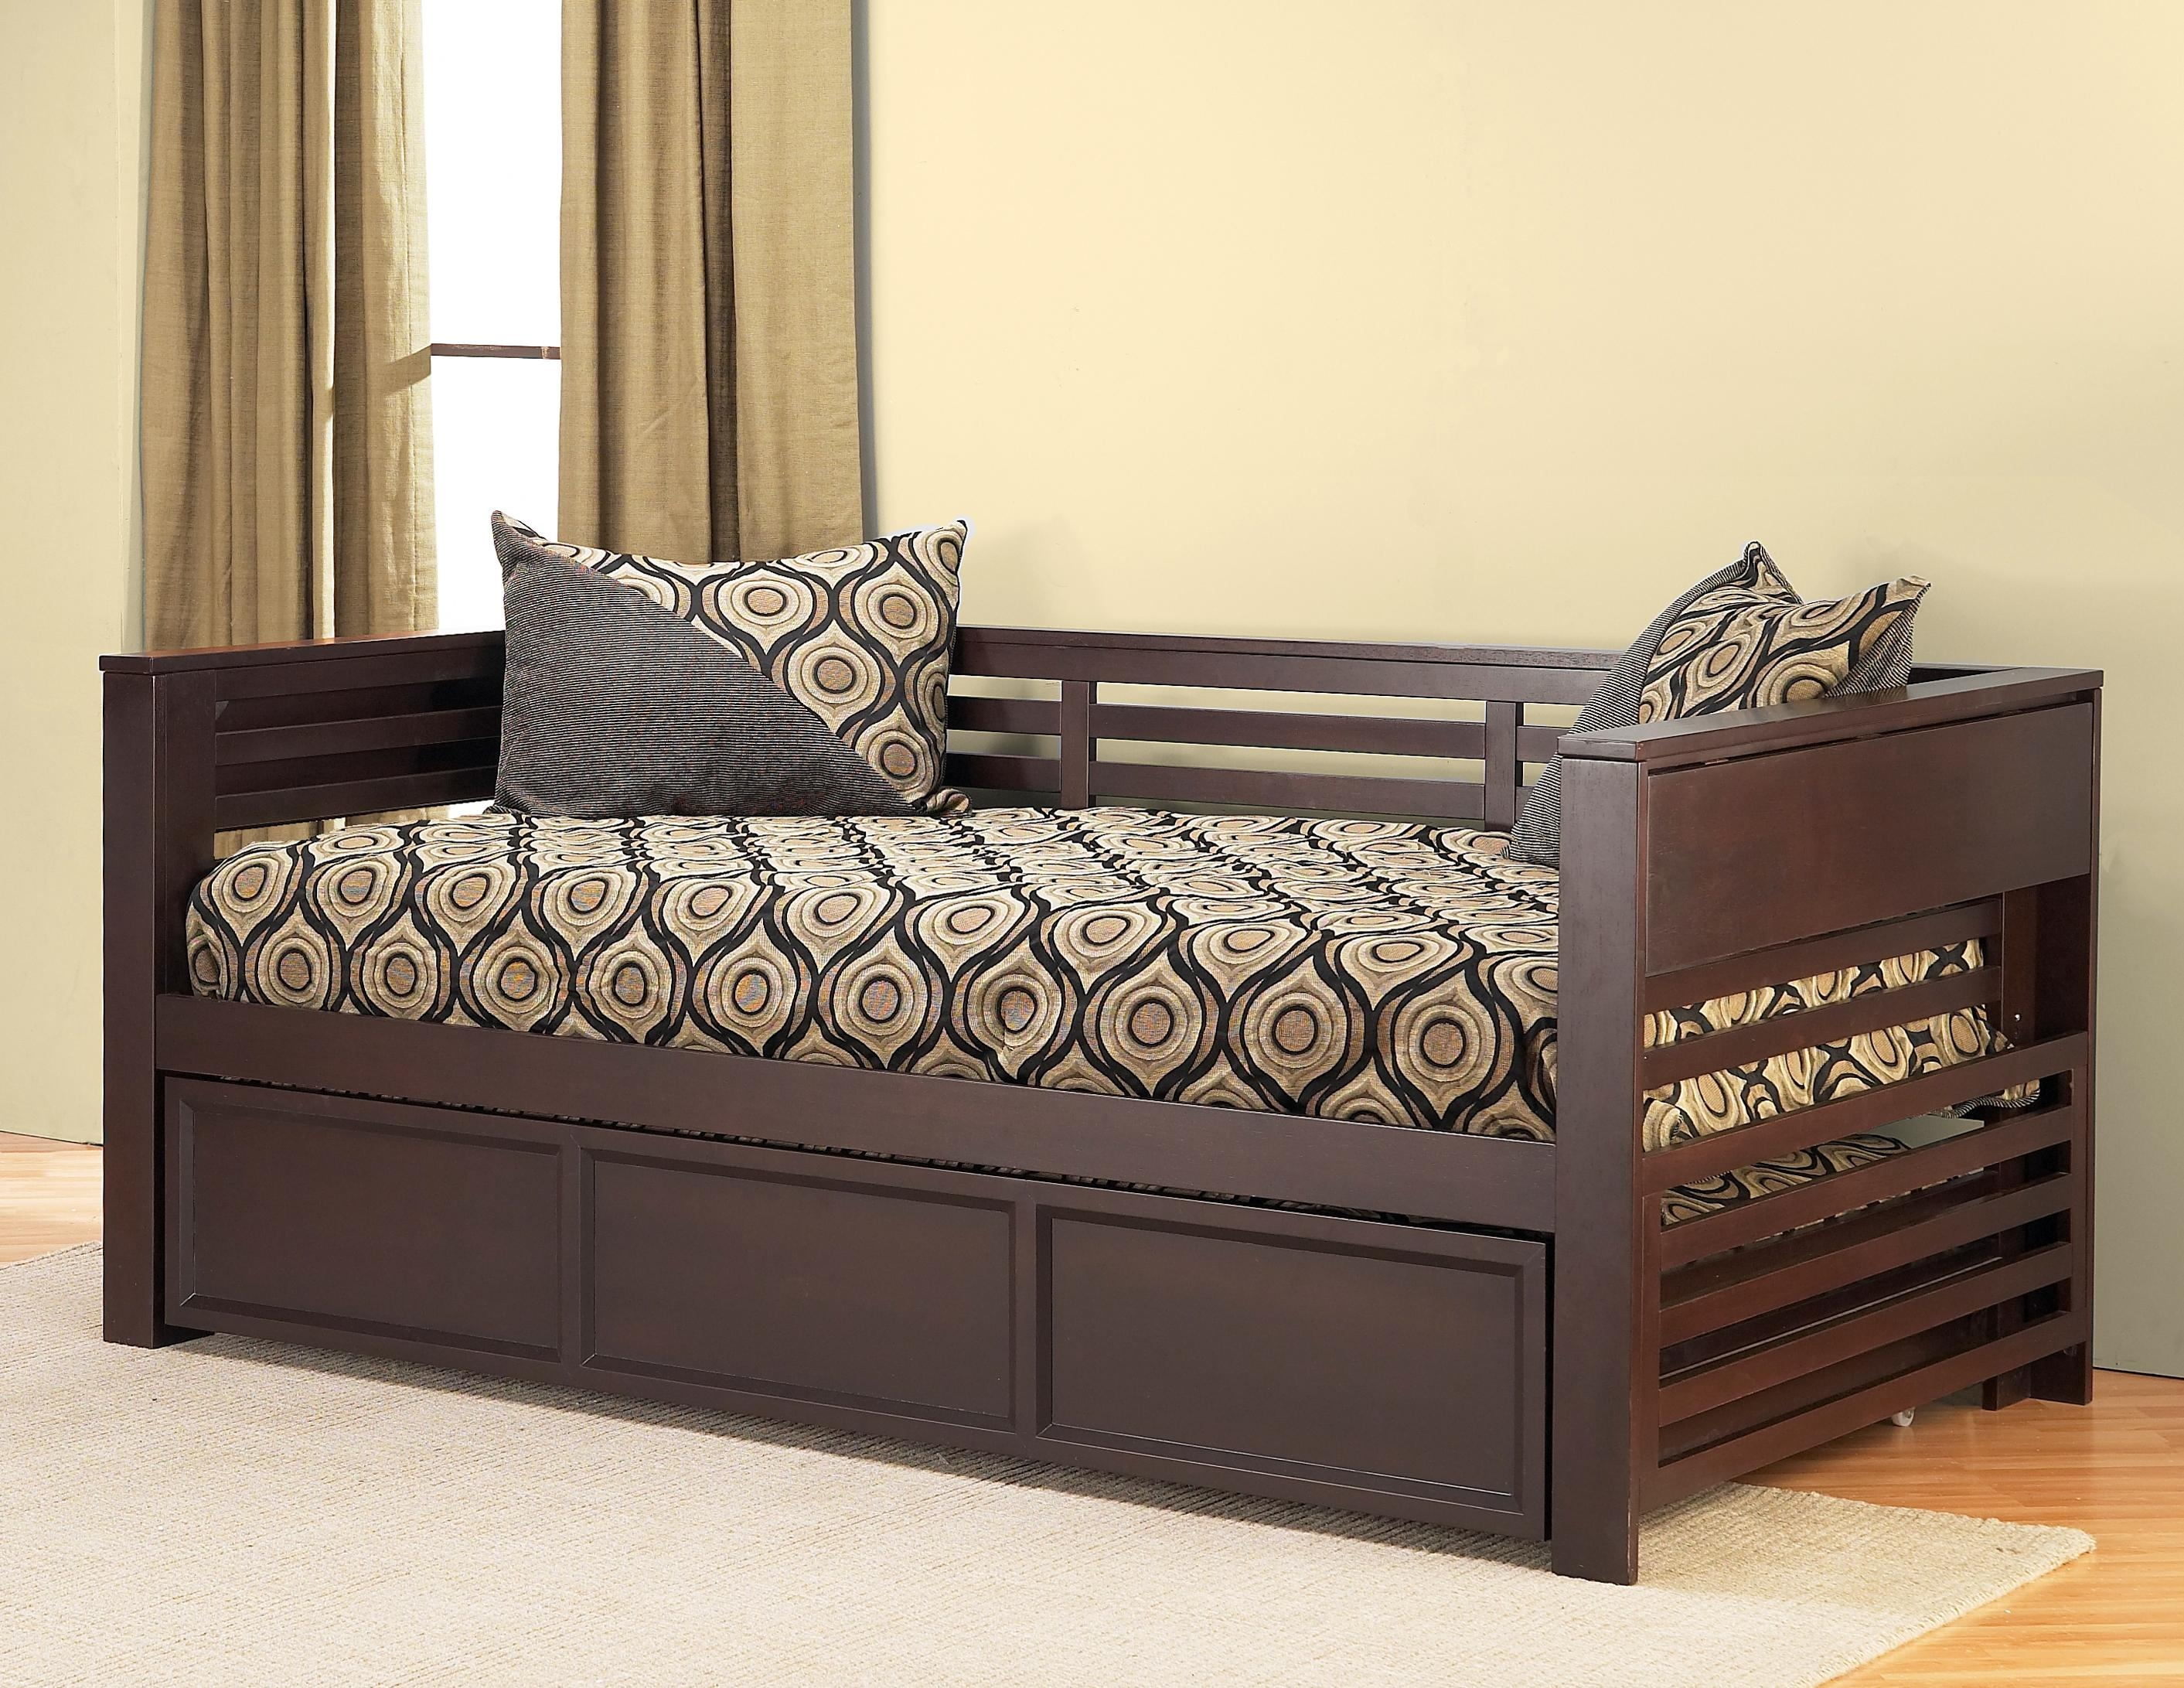 Bedroom: Mesmerizing And Stunning Cheap Daybeds With Trundle For Pertaining To Sofas Daybed With Trundle (Image 1 of 20)